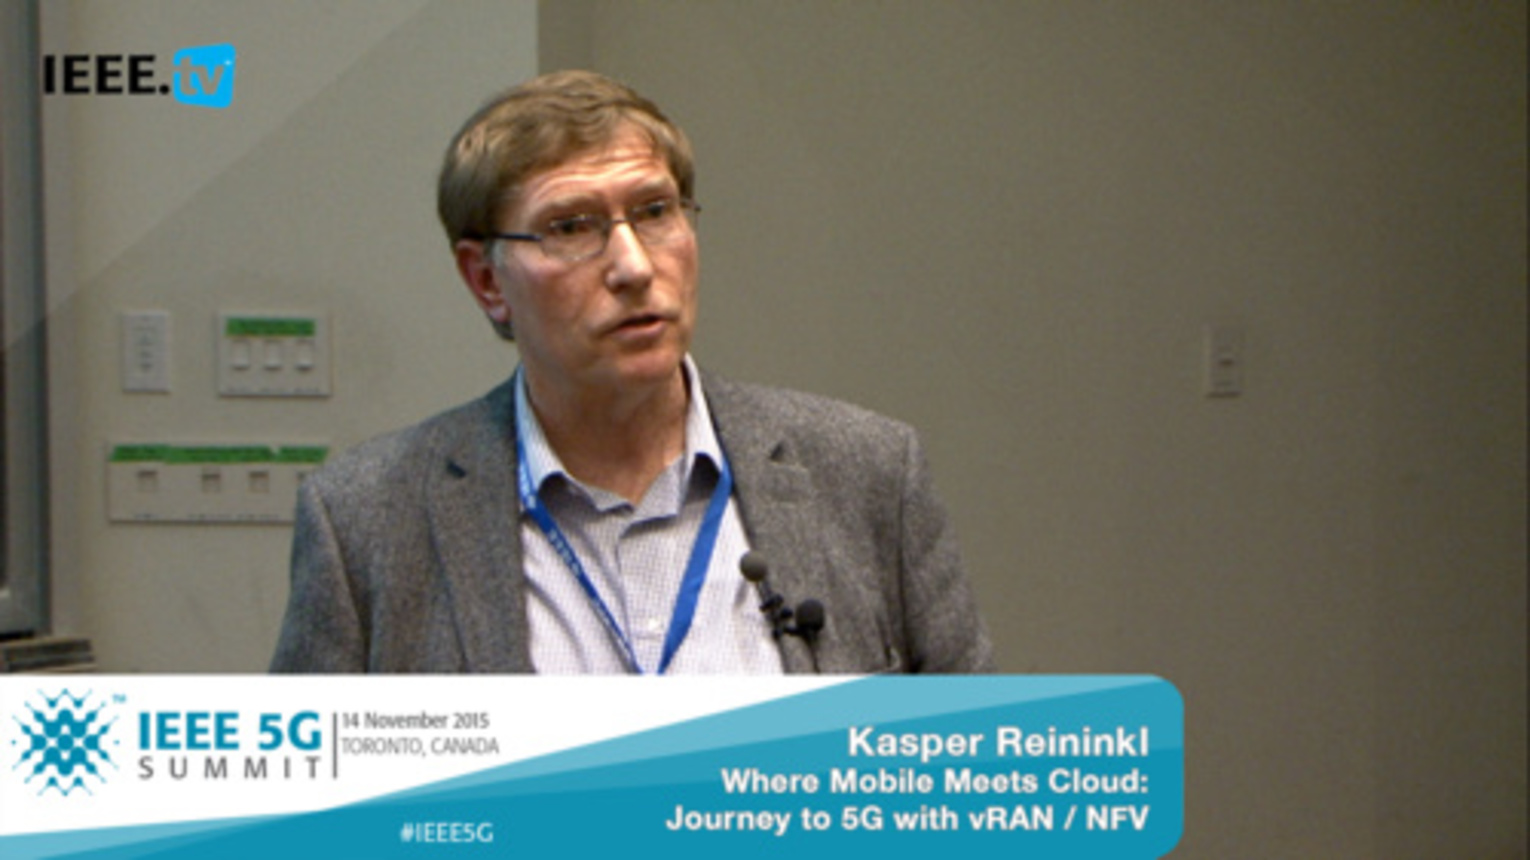 Toronto 5G Summit - 2015 - Kasper Reininkl - Where Mobile Meets Cloud